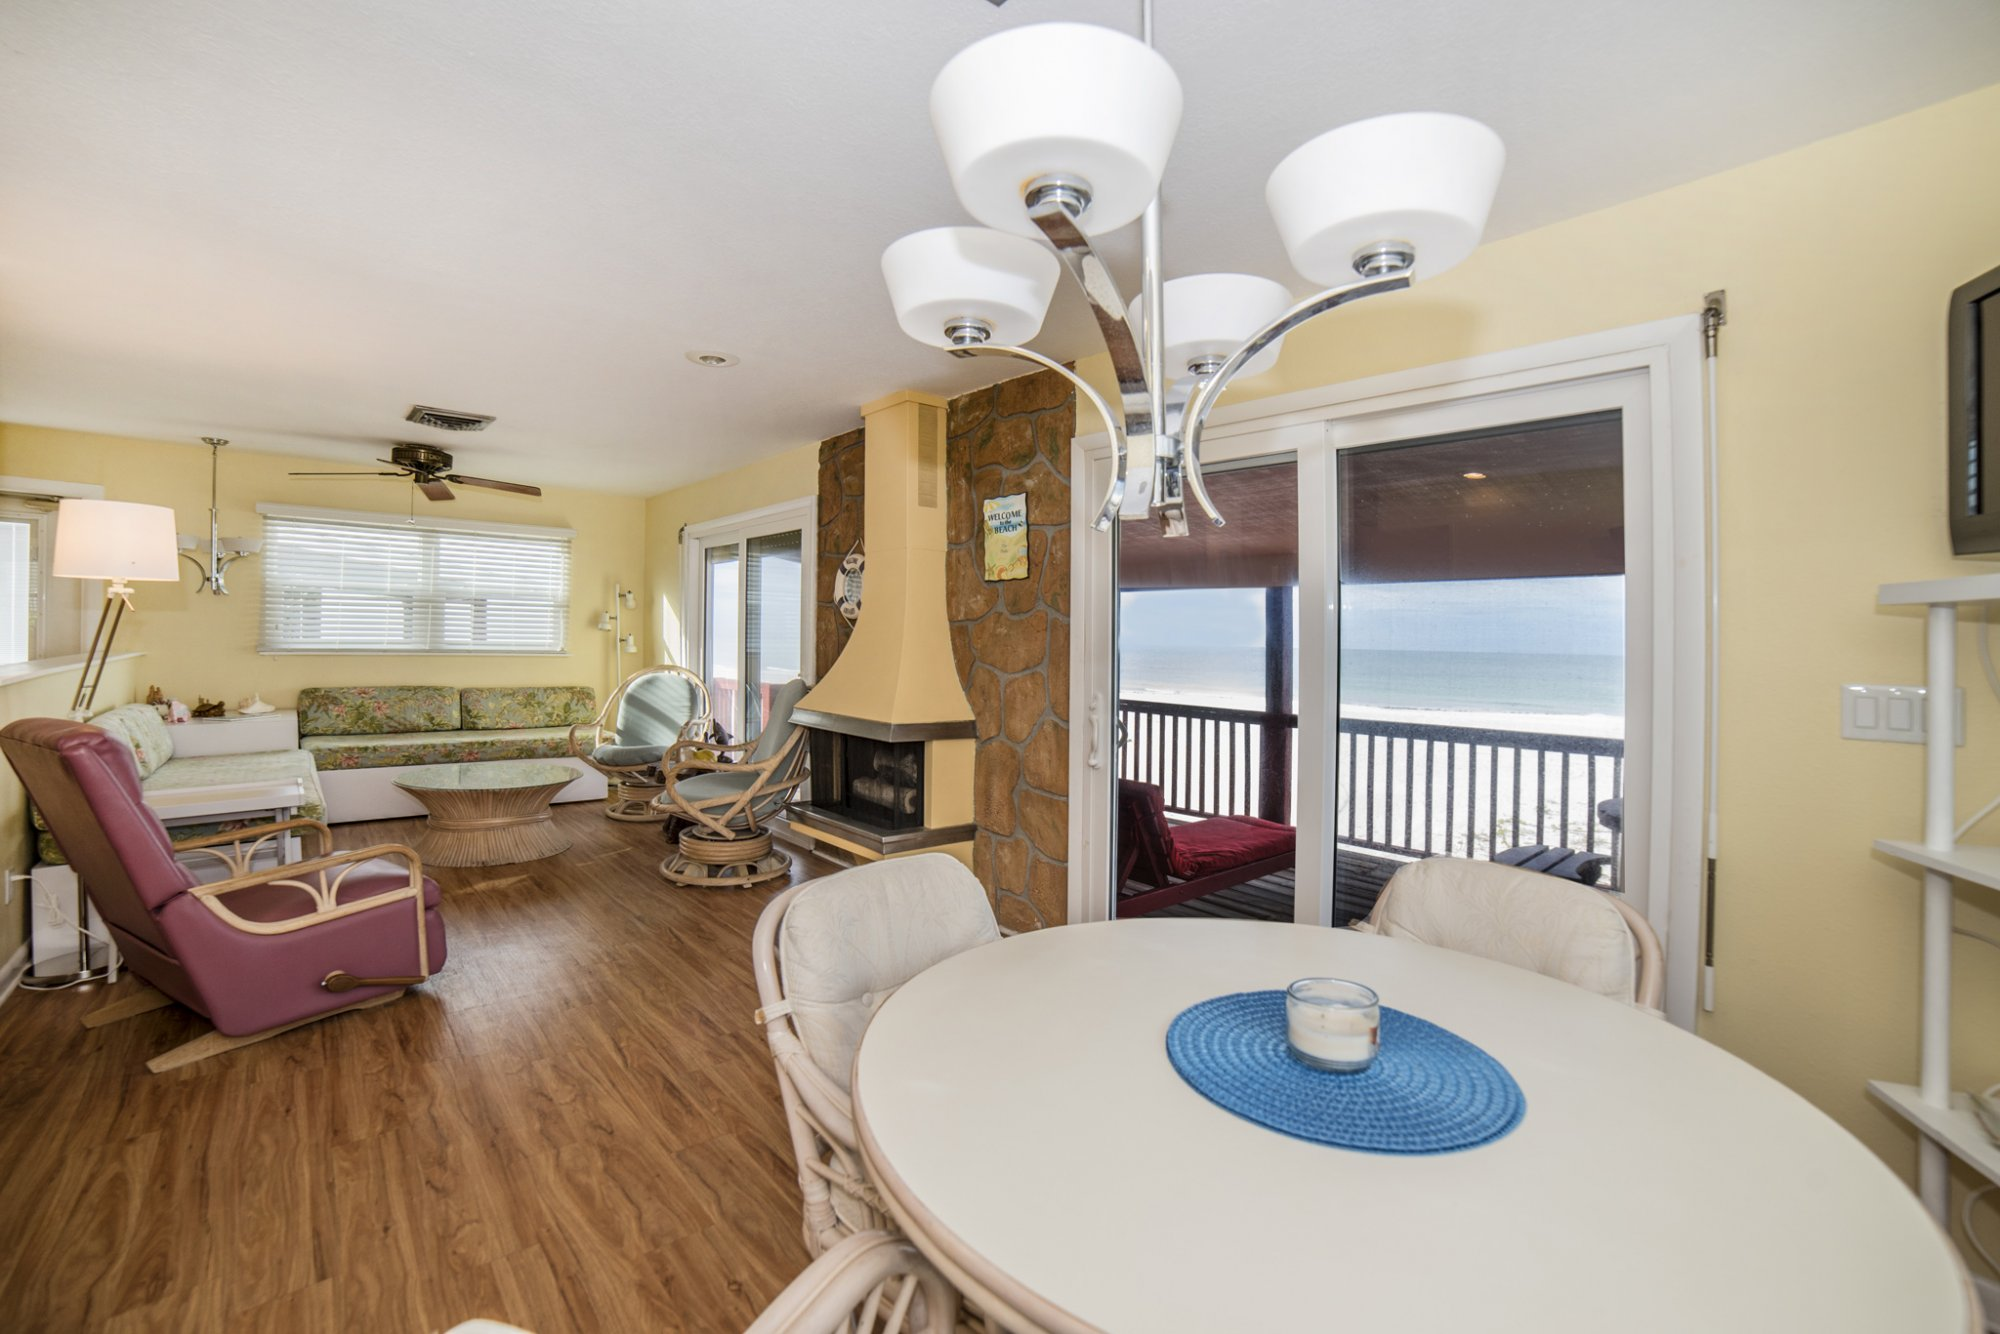 Beachfront Bungalow - Indian Rocks Beach Vacation Rentals | Carter